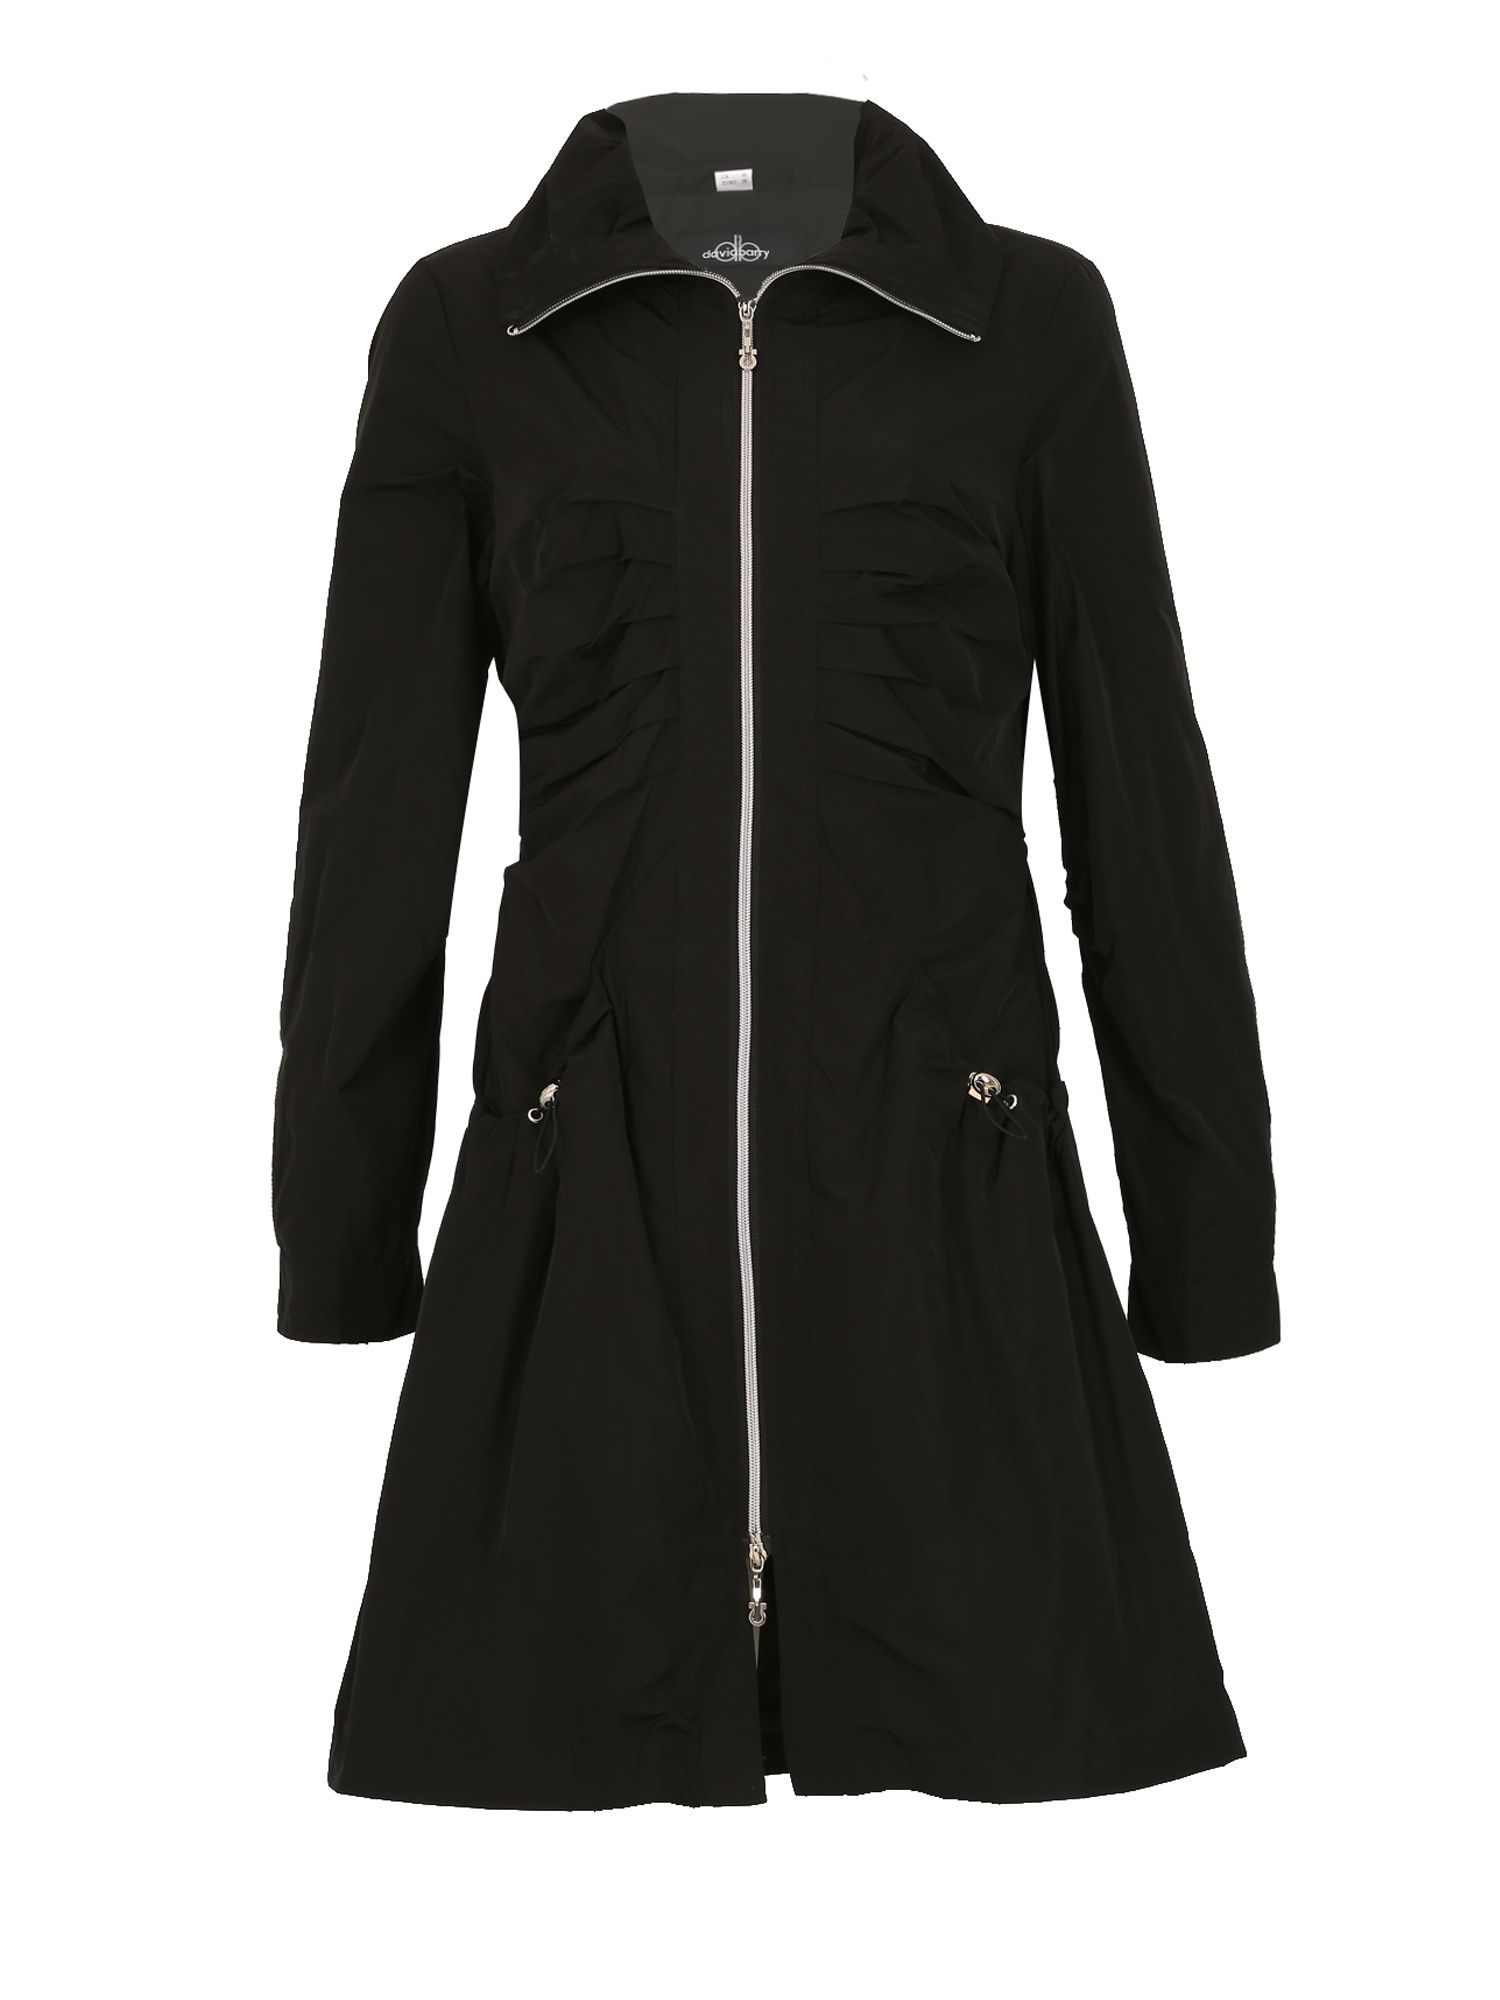 David Barry Ladies Raincoat, Black